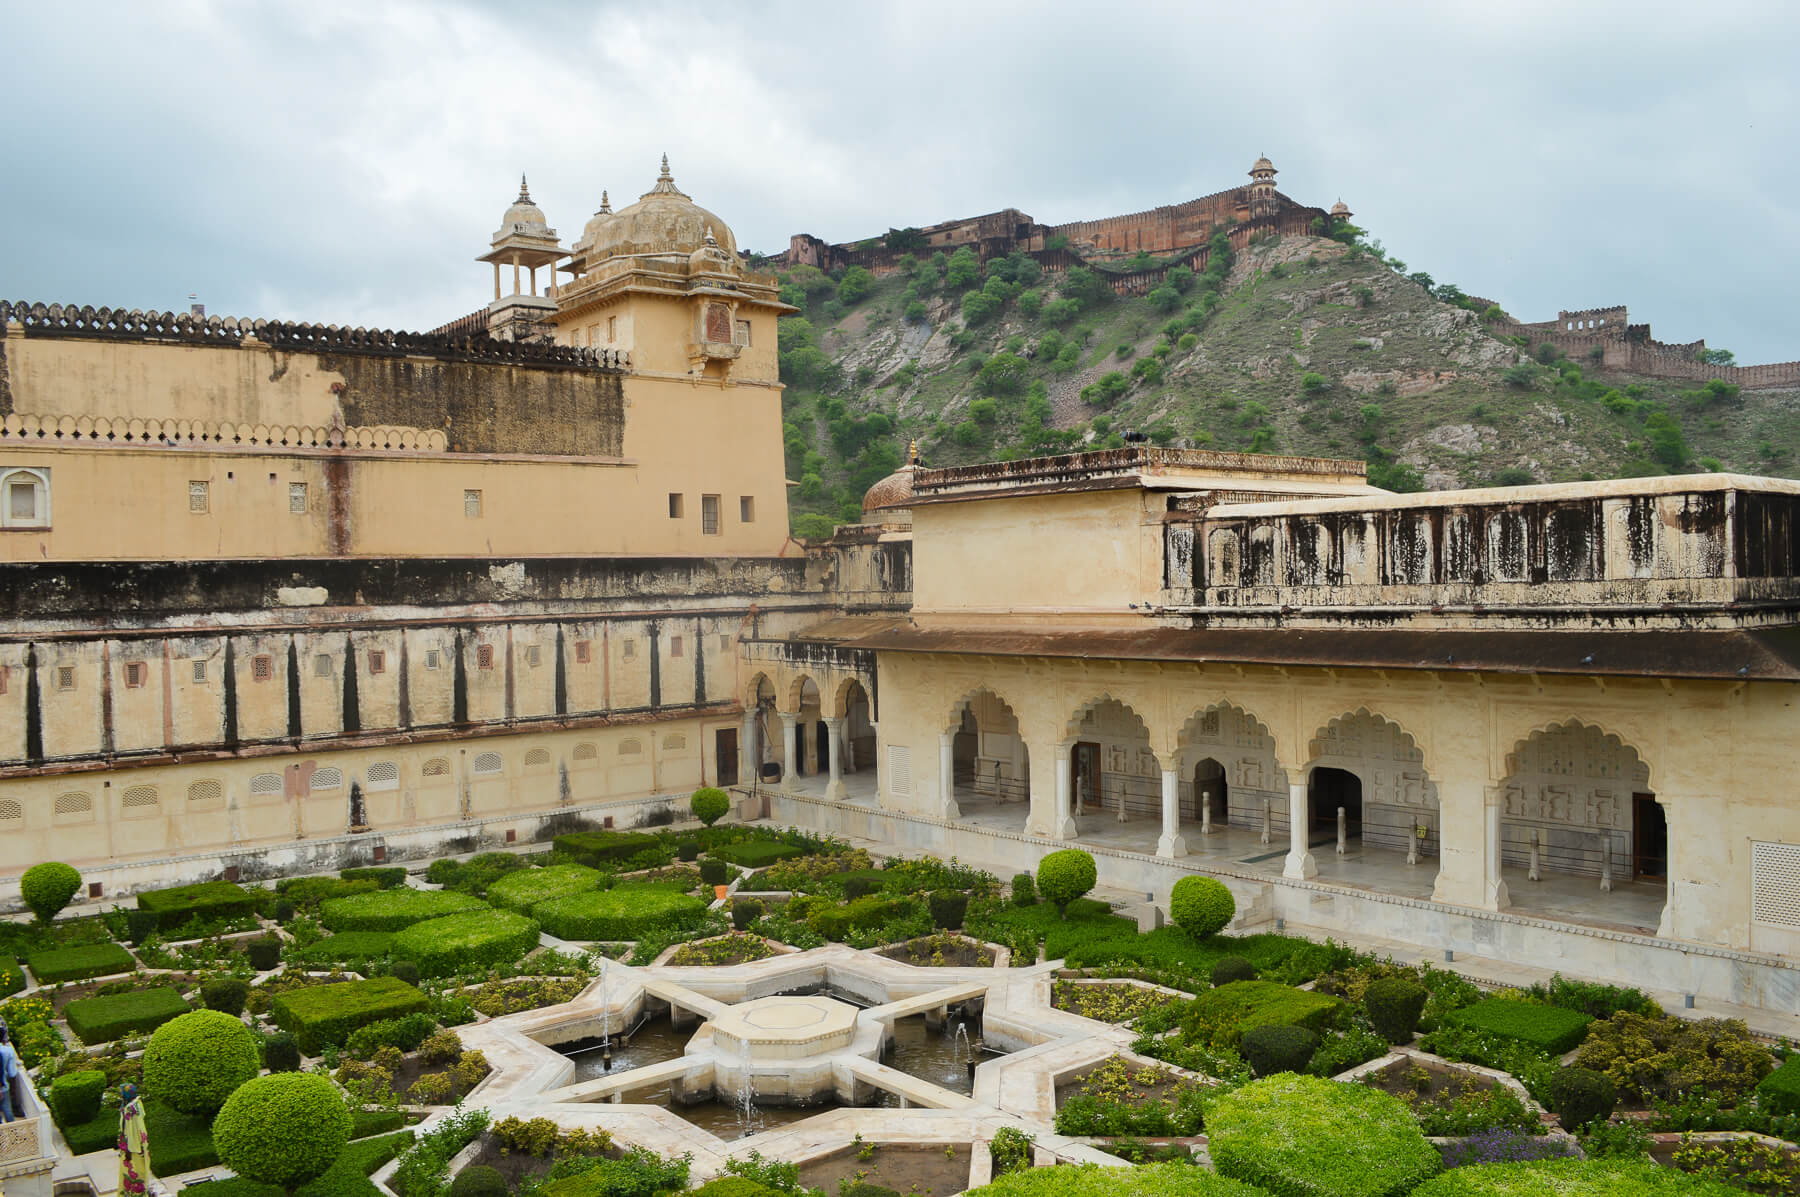 A geometric garden on the terrace of a the Amber Fort